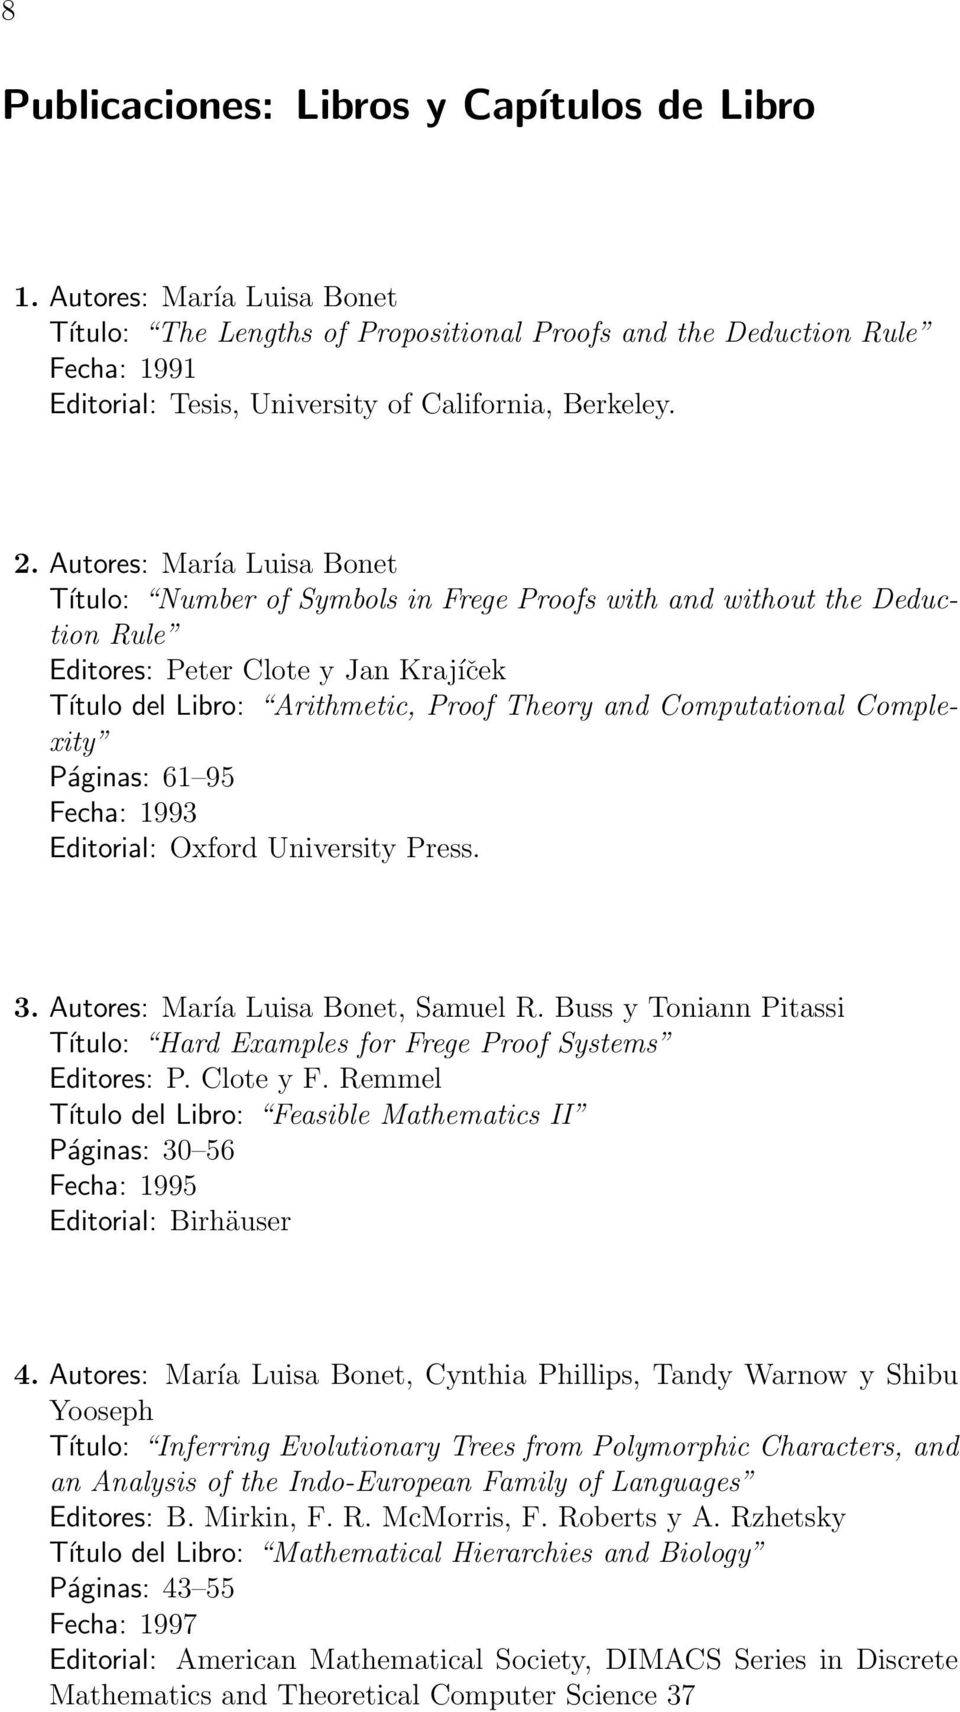 Autores: María Luisa Bonet Título: Number of Symbols in Frege Proofs with and without the Deduction Rule Editores: Peter Clote y Jan Krajíček Título del Libro: Arithmetic, Proof Theory and